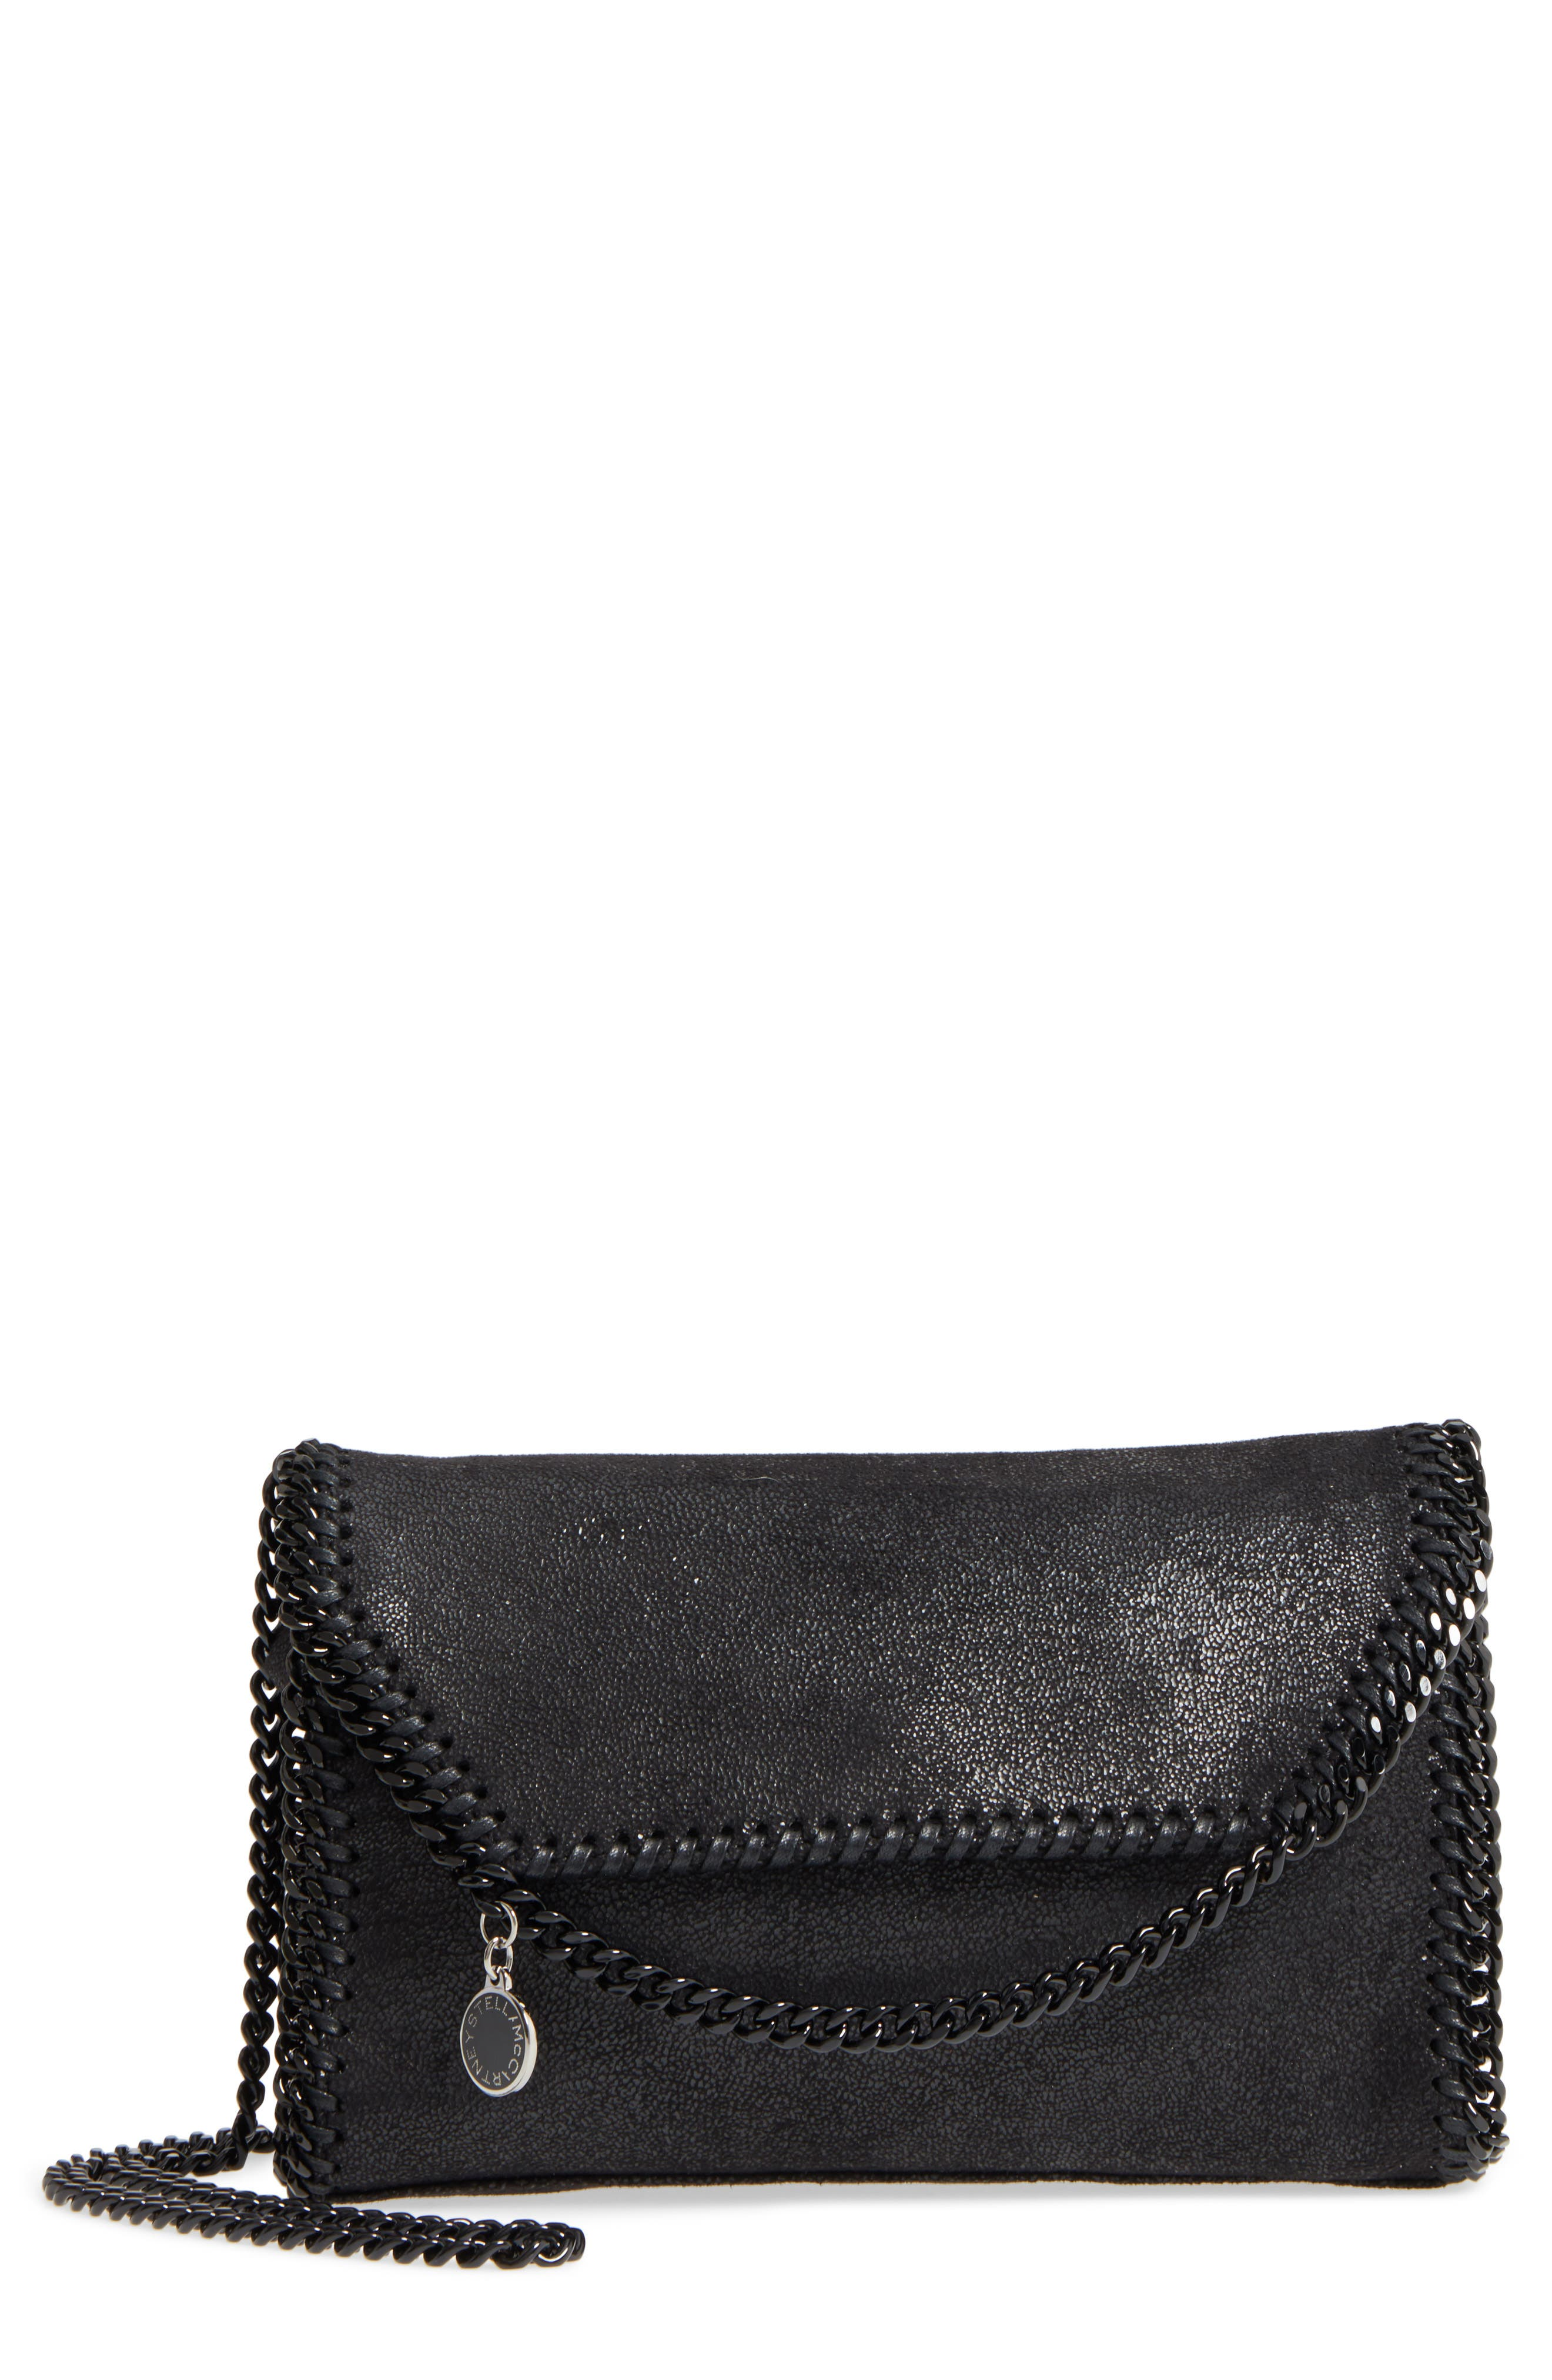 Mini Falabella - Shaggy Deer Faux Leather Crossbody Bag,                             Main thumbnail 1, color,                             001